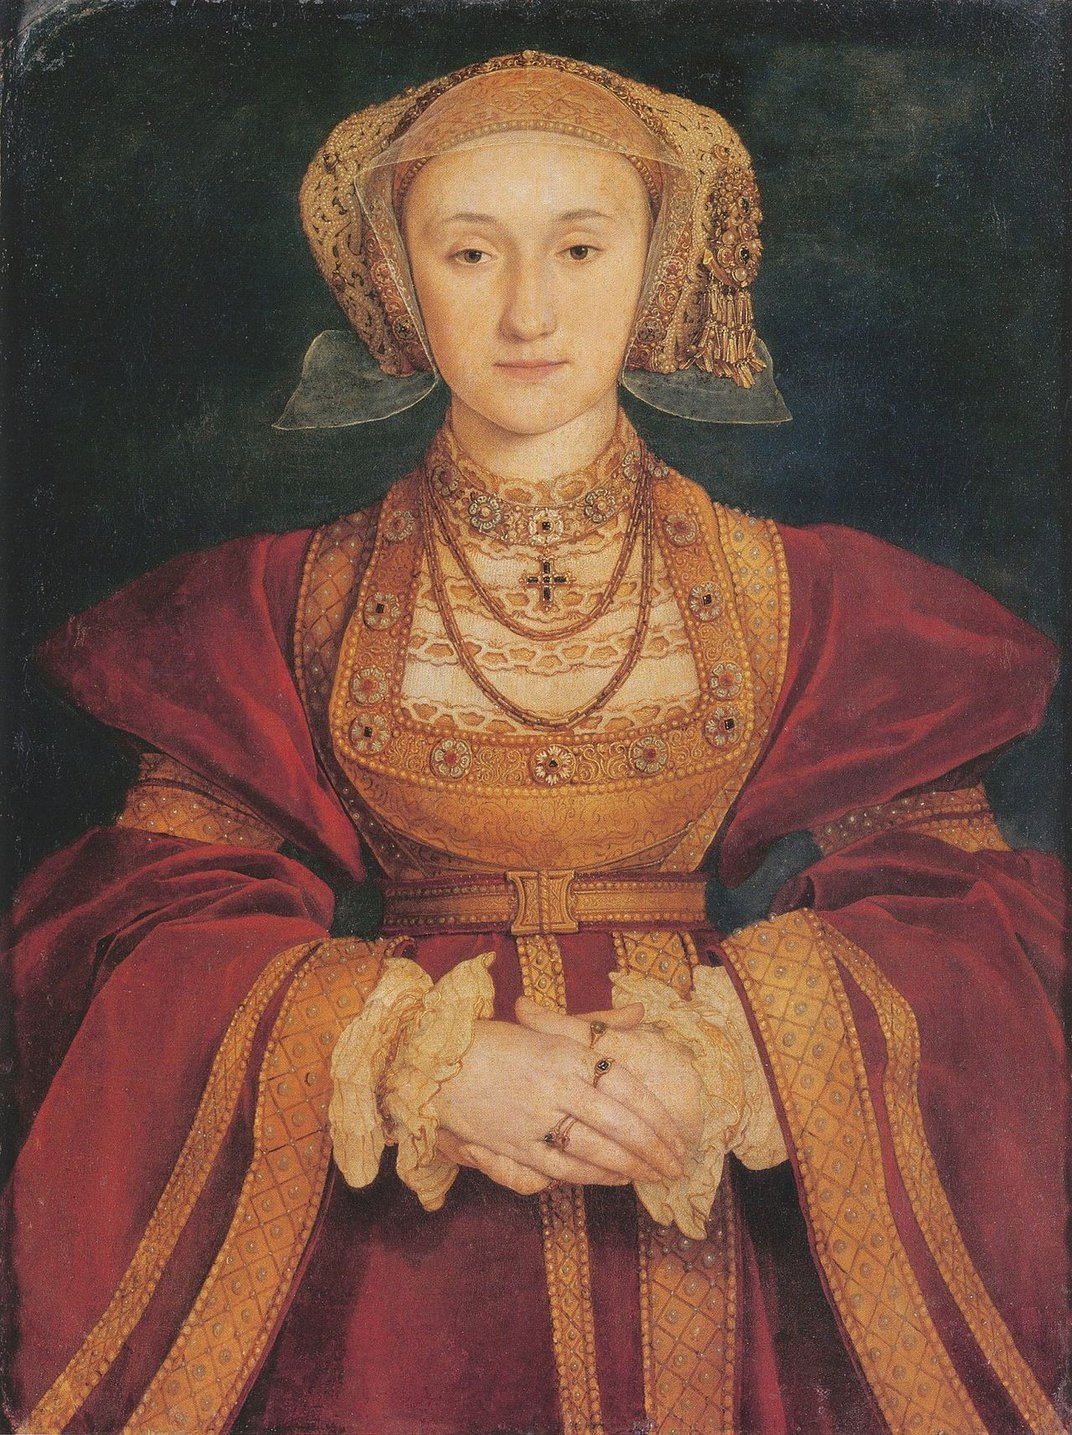 Presumed Portrait of Catherine Howard May Actually Depict Anne of Cleves